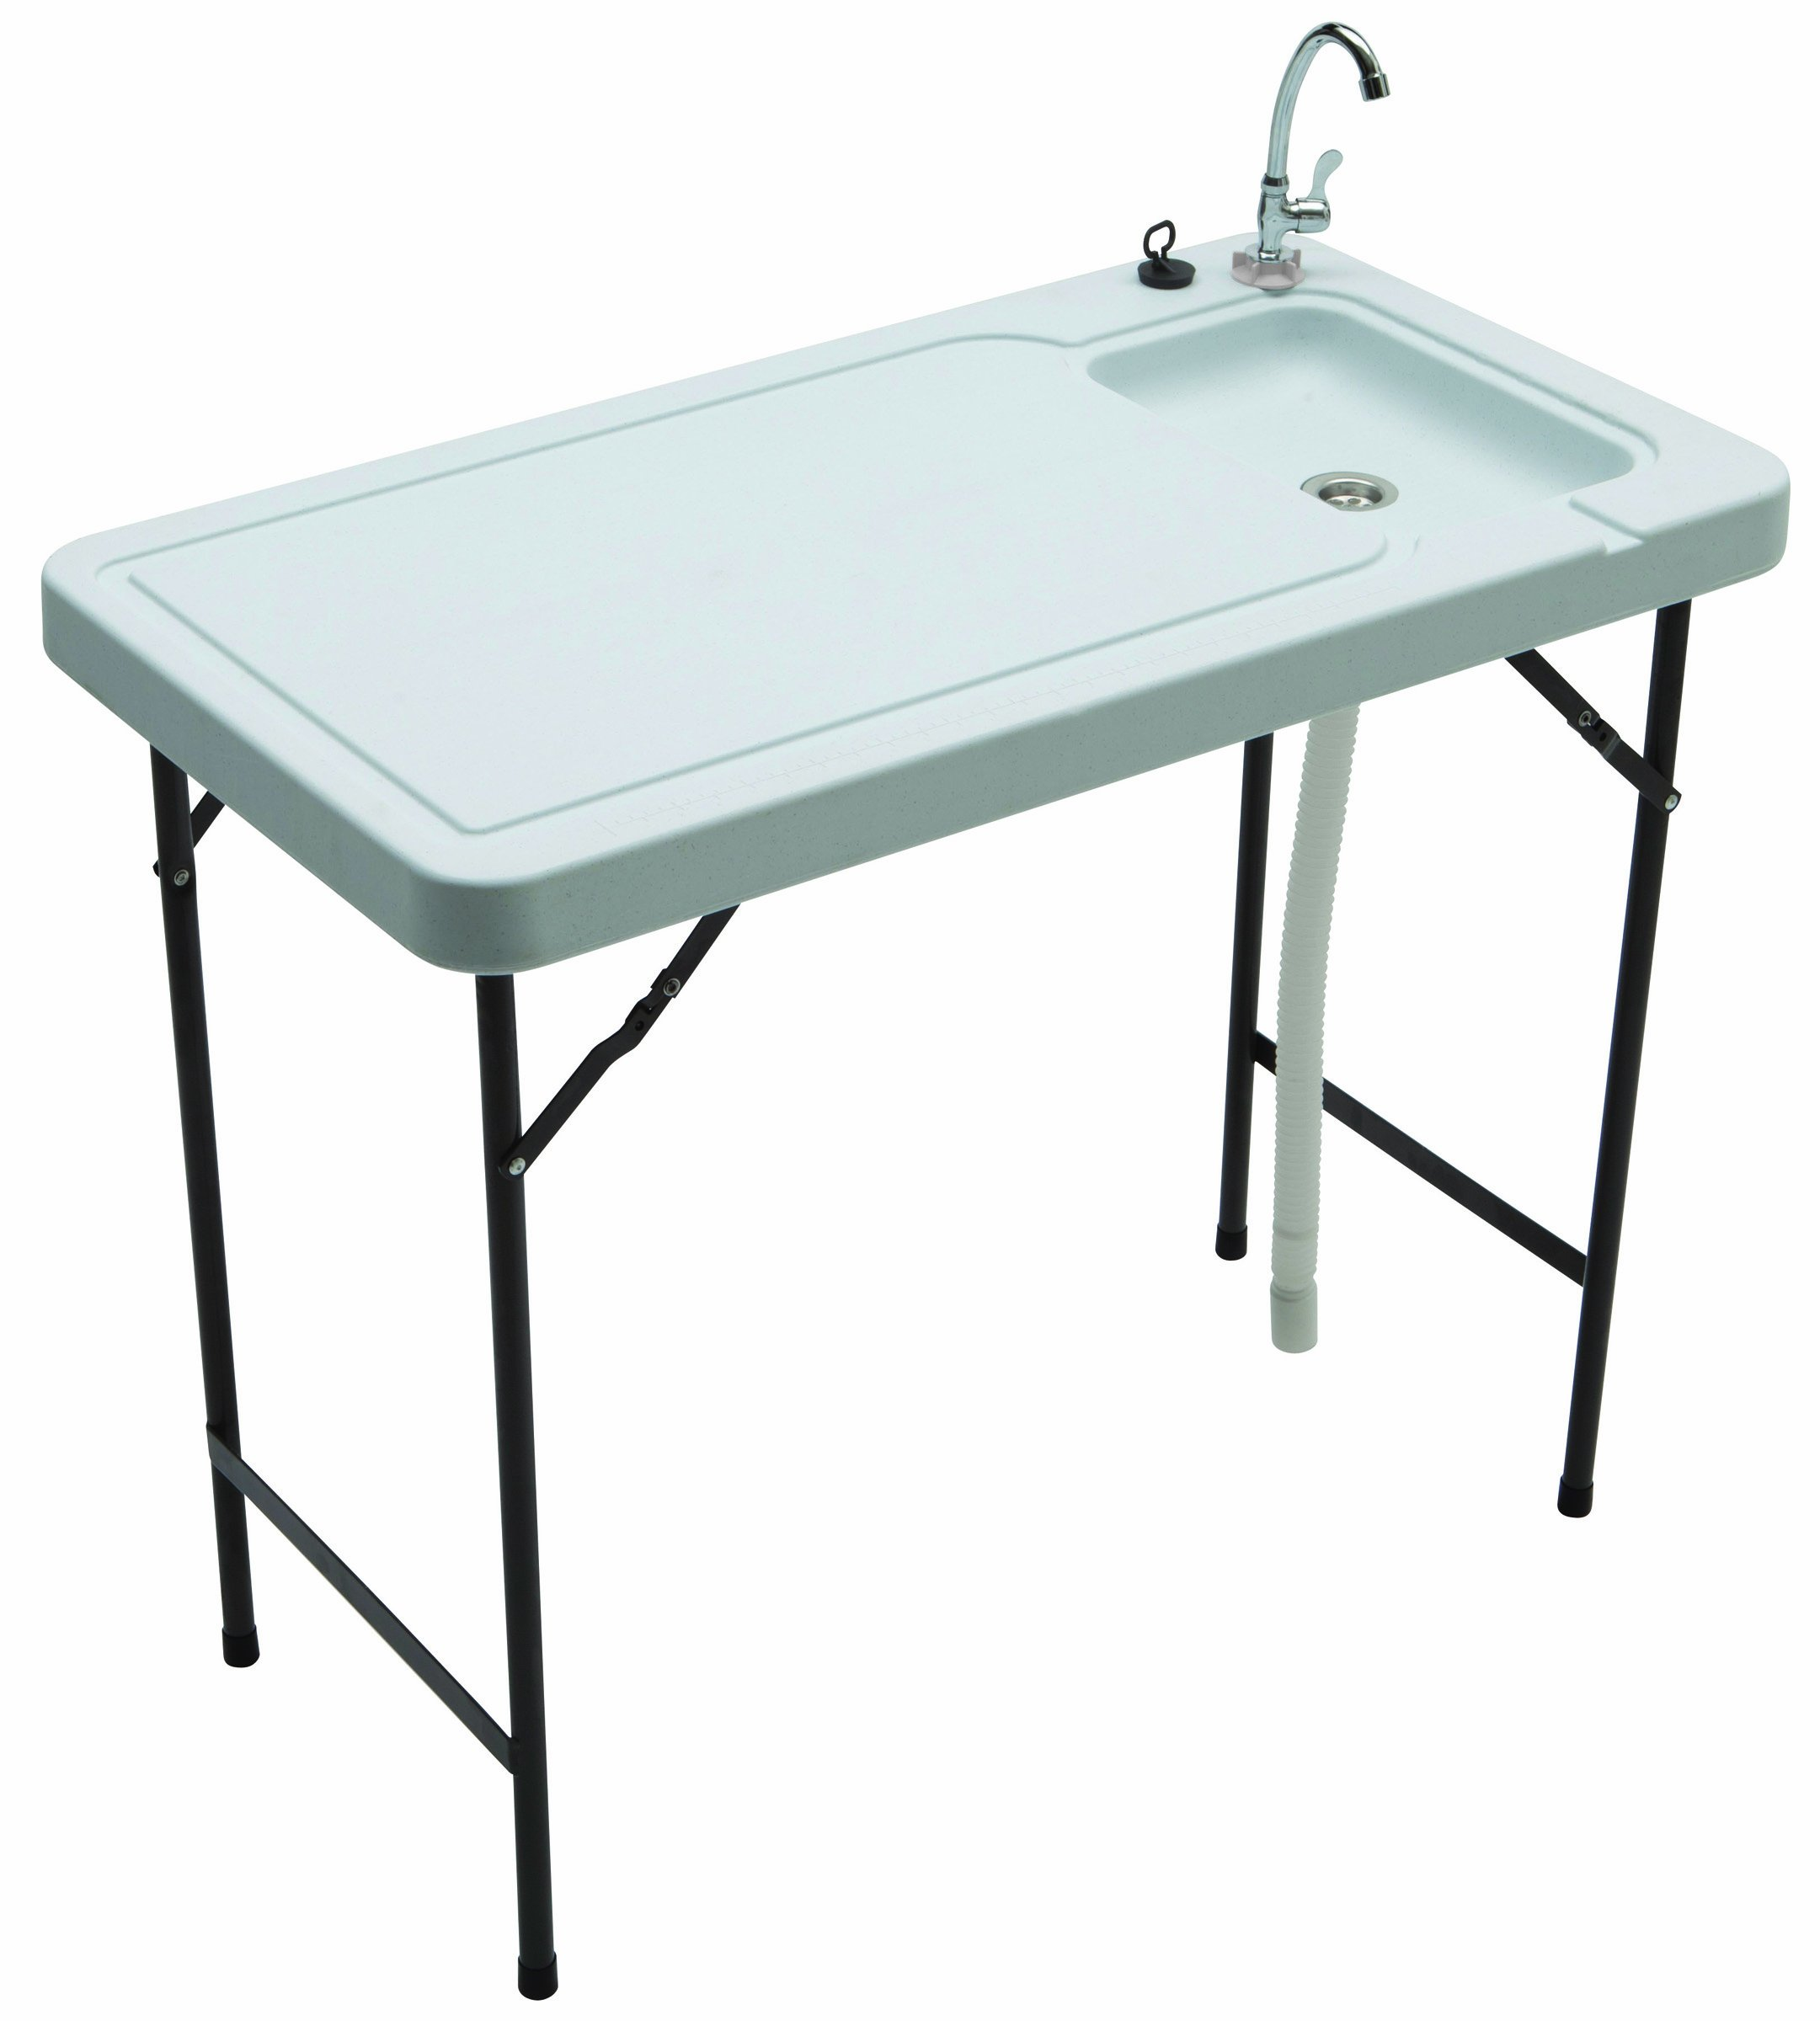 Tricam MT-2/SKFT-44 Outdoor Fish and Game Cleaning Table with Quick-Connect Stainless Steel Faucet by Tricam